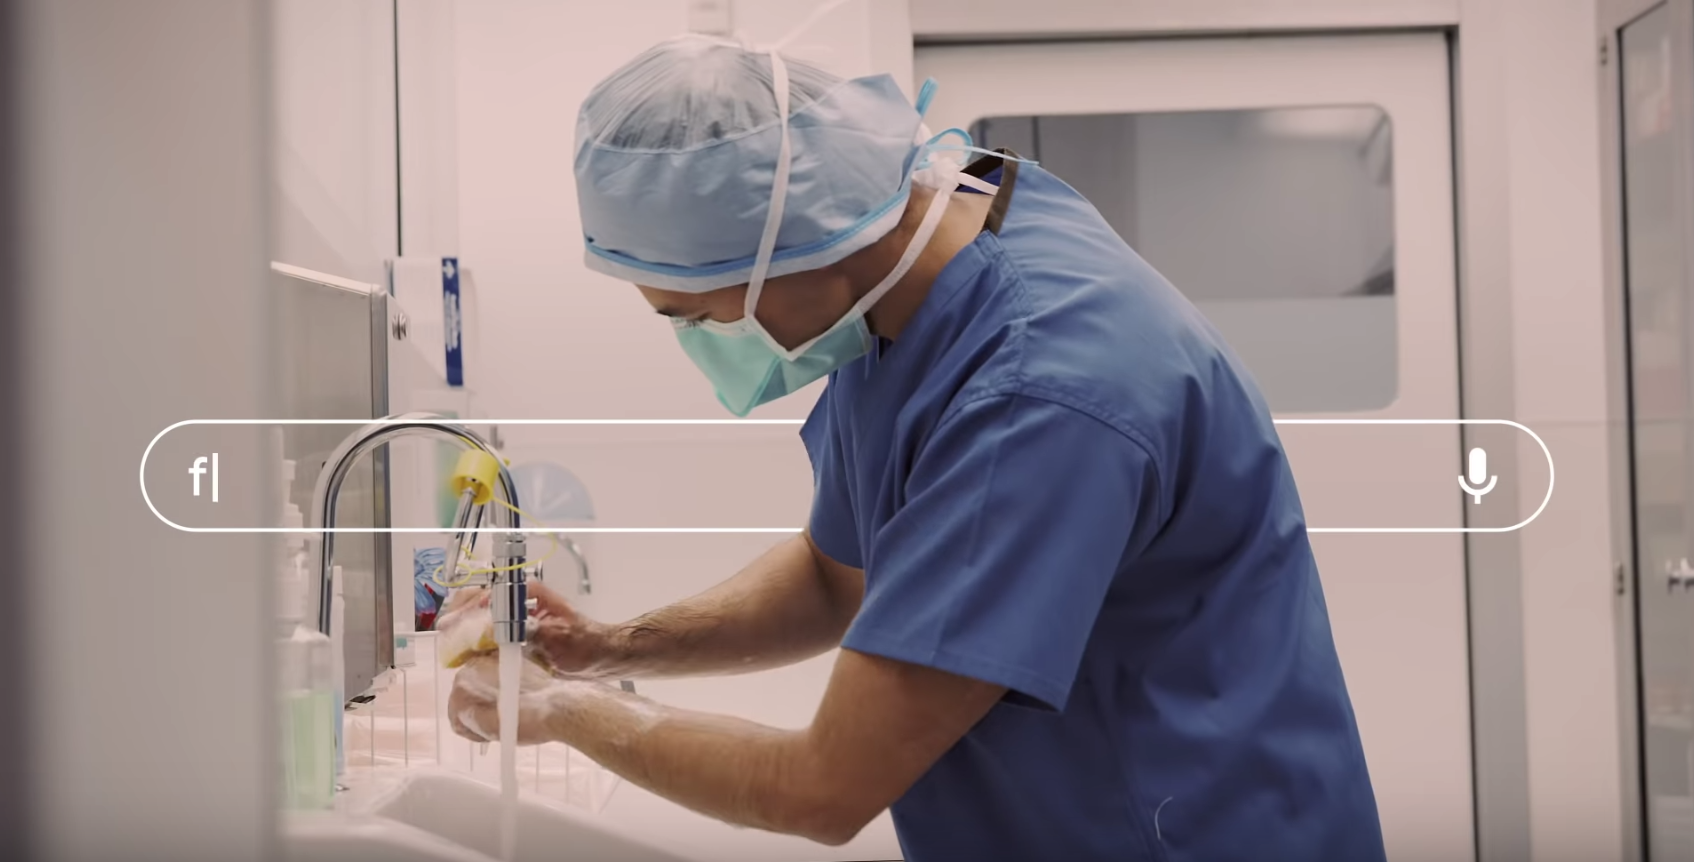 Google Thanks Healthcare Workers In This Touching Advert